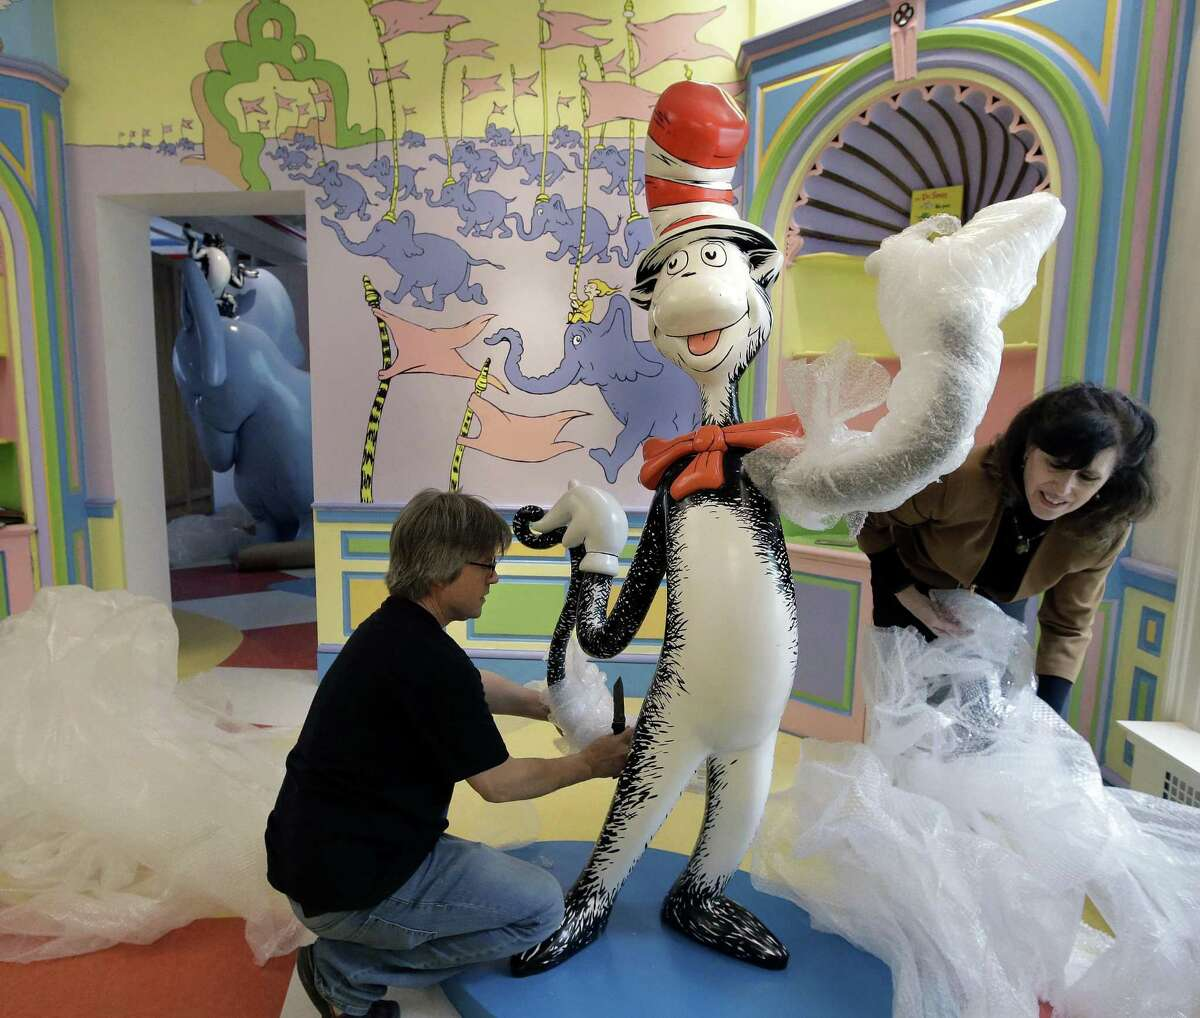 """John Simpson (left), project director of exhibitions for The Amazing World of Dr. Seuss Museum, and his wife Kay Simpson (right), president of Springfield Museums, unwrap a statue of the """"Cat in the Hat,"""" at the museum in Springfield, Mass. The museum devoted to Dr. Seuss, which opened on June 3 in his hometown, features interactive exhibits, a collection of personal belongings and explains how the childhood experiences of the man, whose real name is Theodor Geisel, shaped his work."""